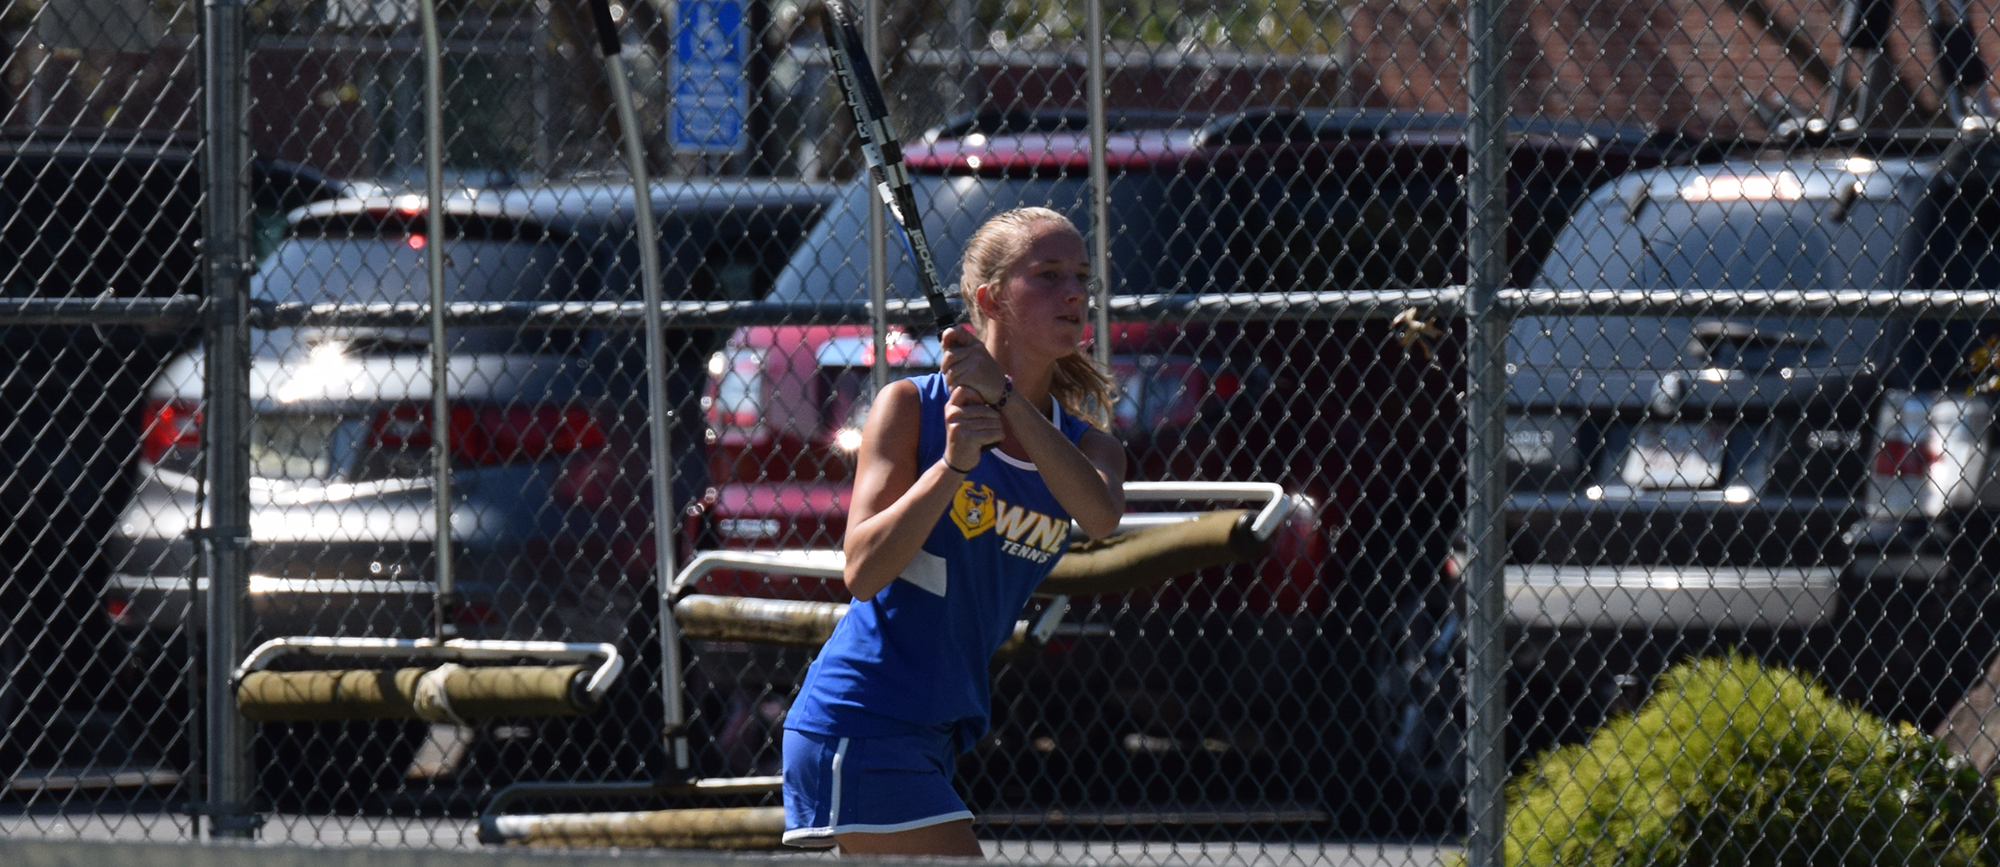 Sophomore Morgan Schrader picked up wins in both singles and doubles play, while classmate Rachel Bauer sealed Western New England's 5-1 victory over Salve Regina on Saturday.